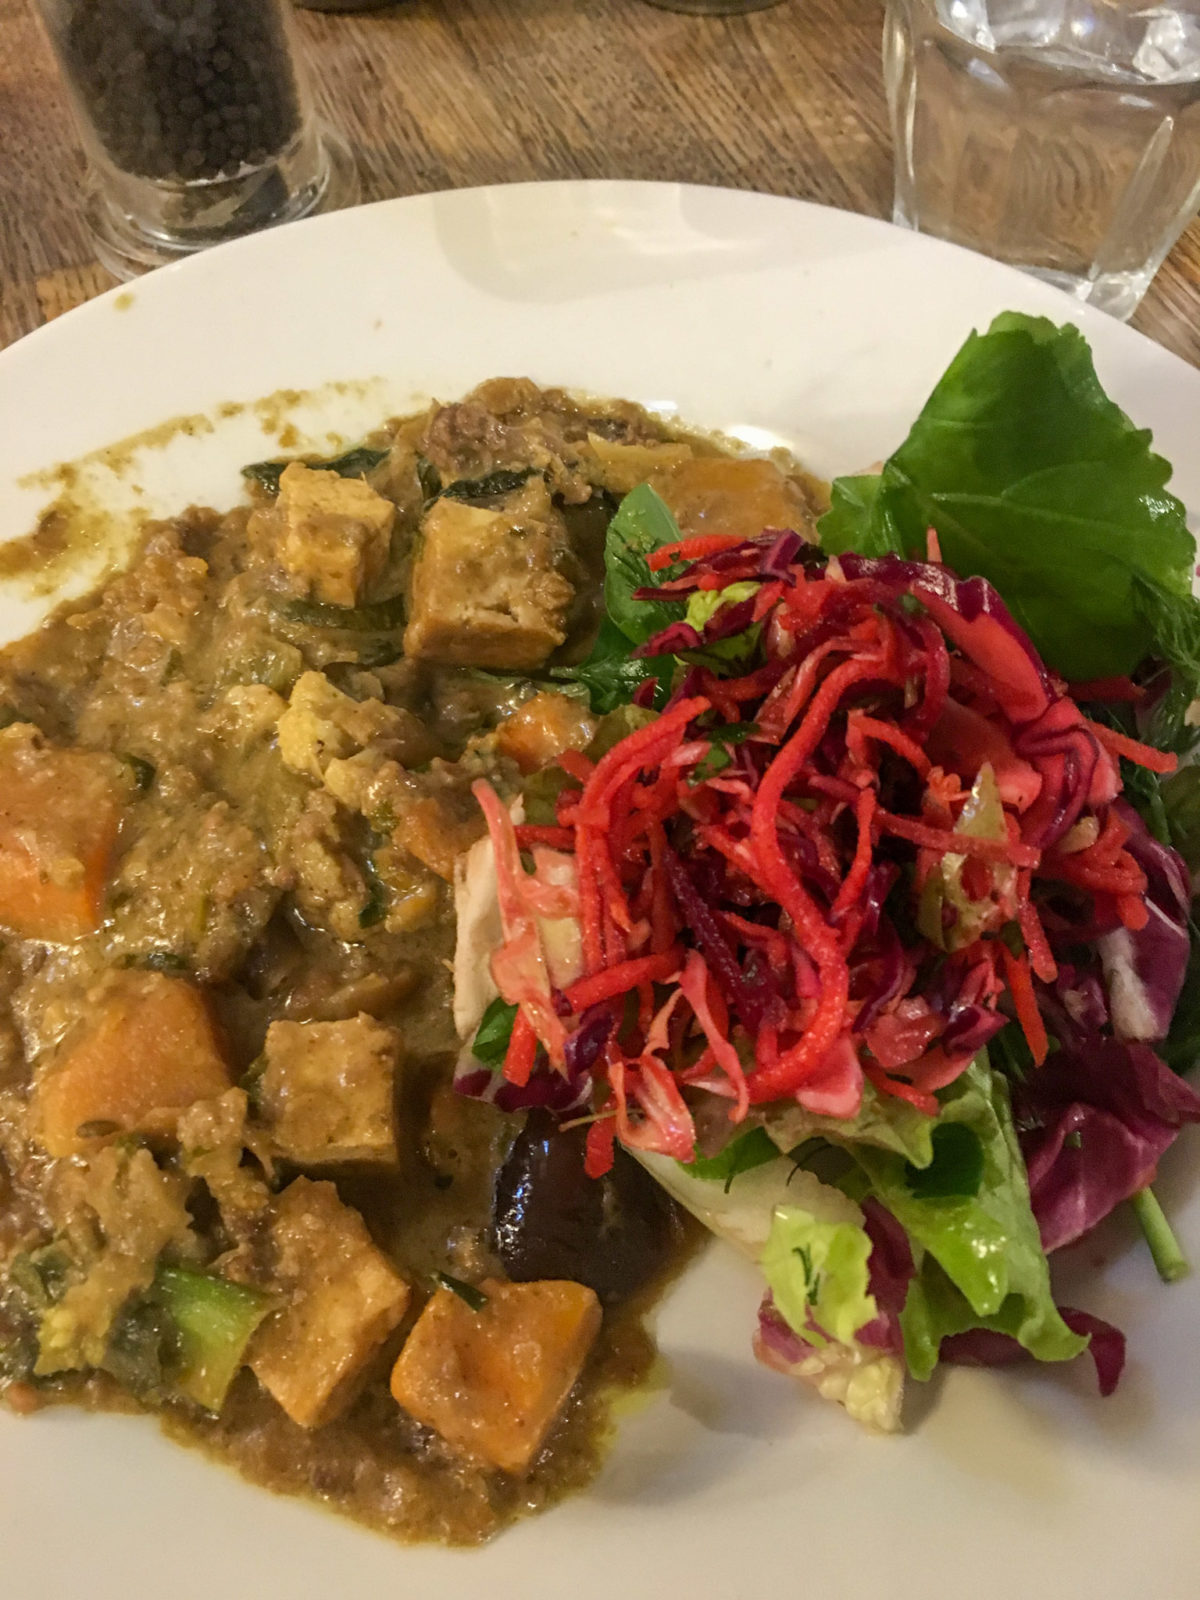 Lunch at Vaults and Garden Cafe Oxford - Best Vegan Food in Oxford 2020